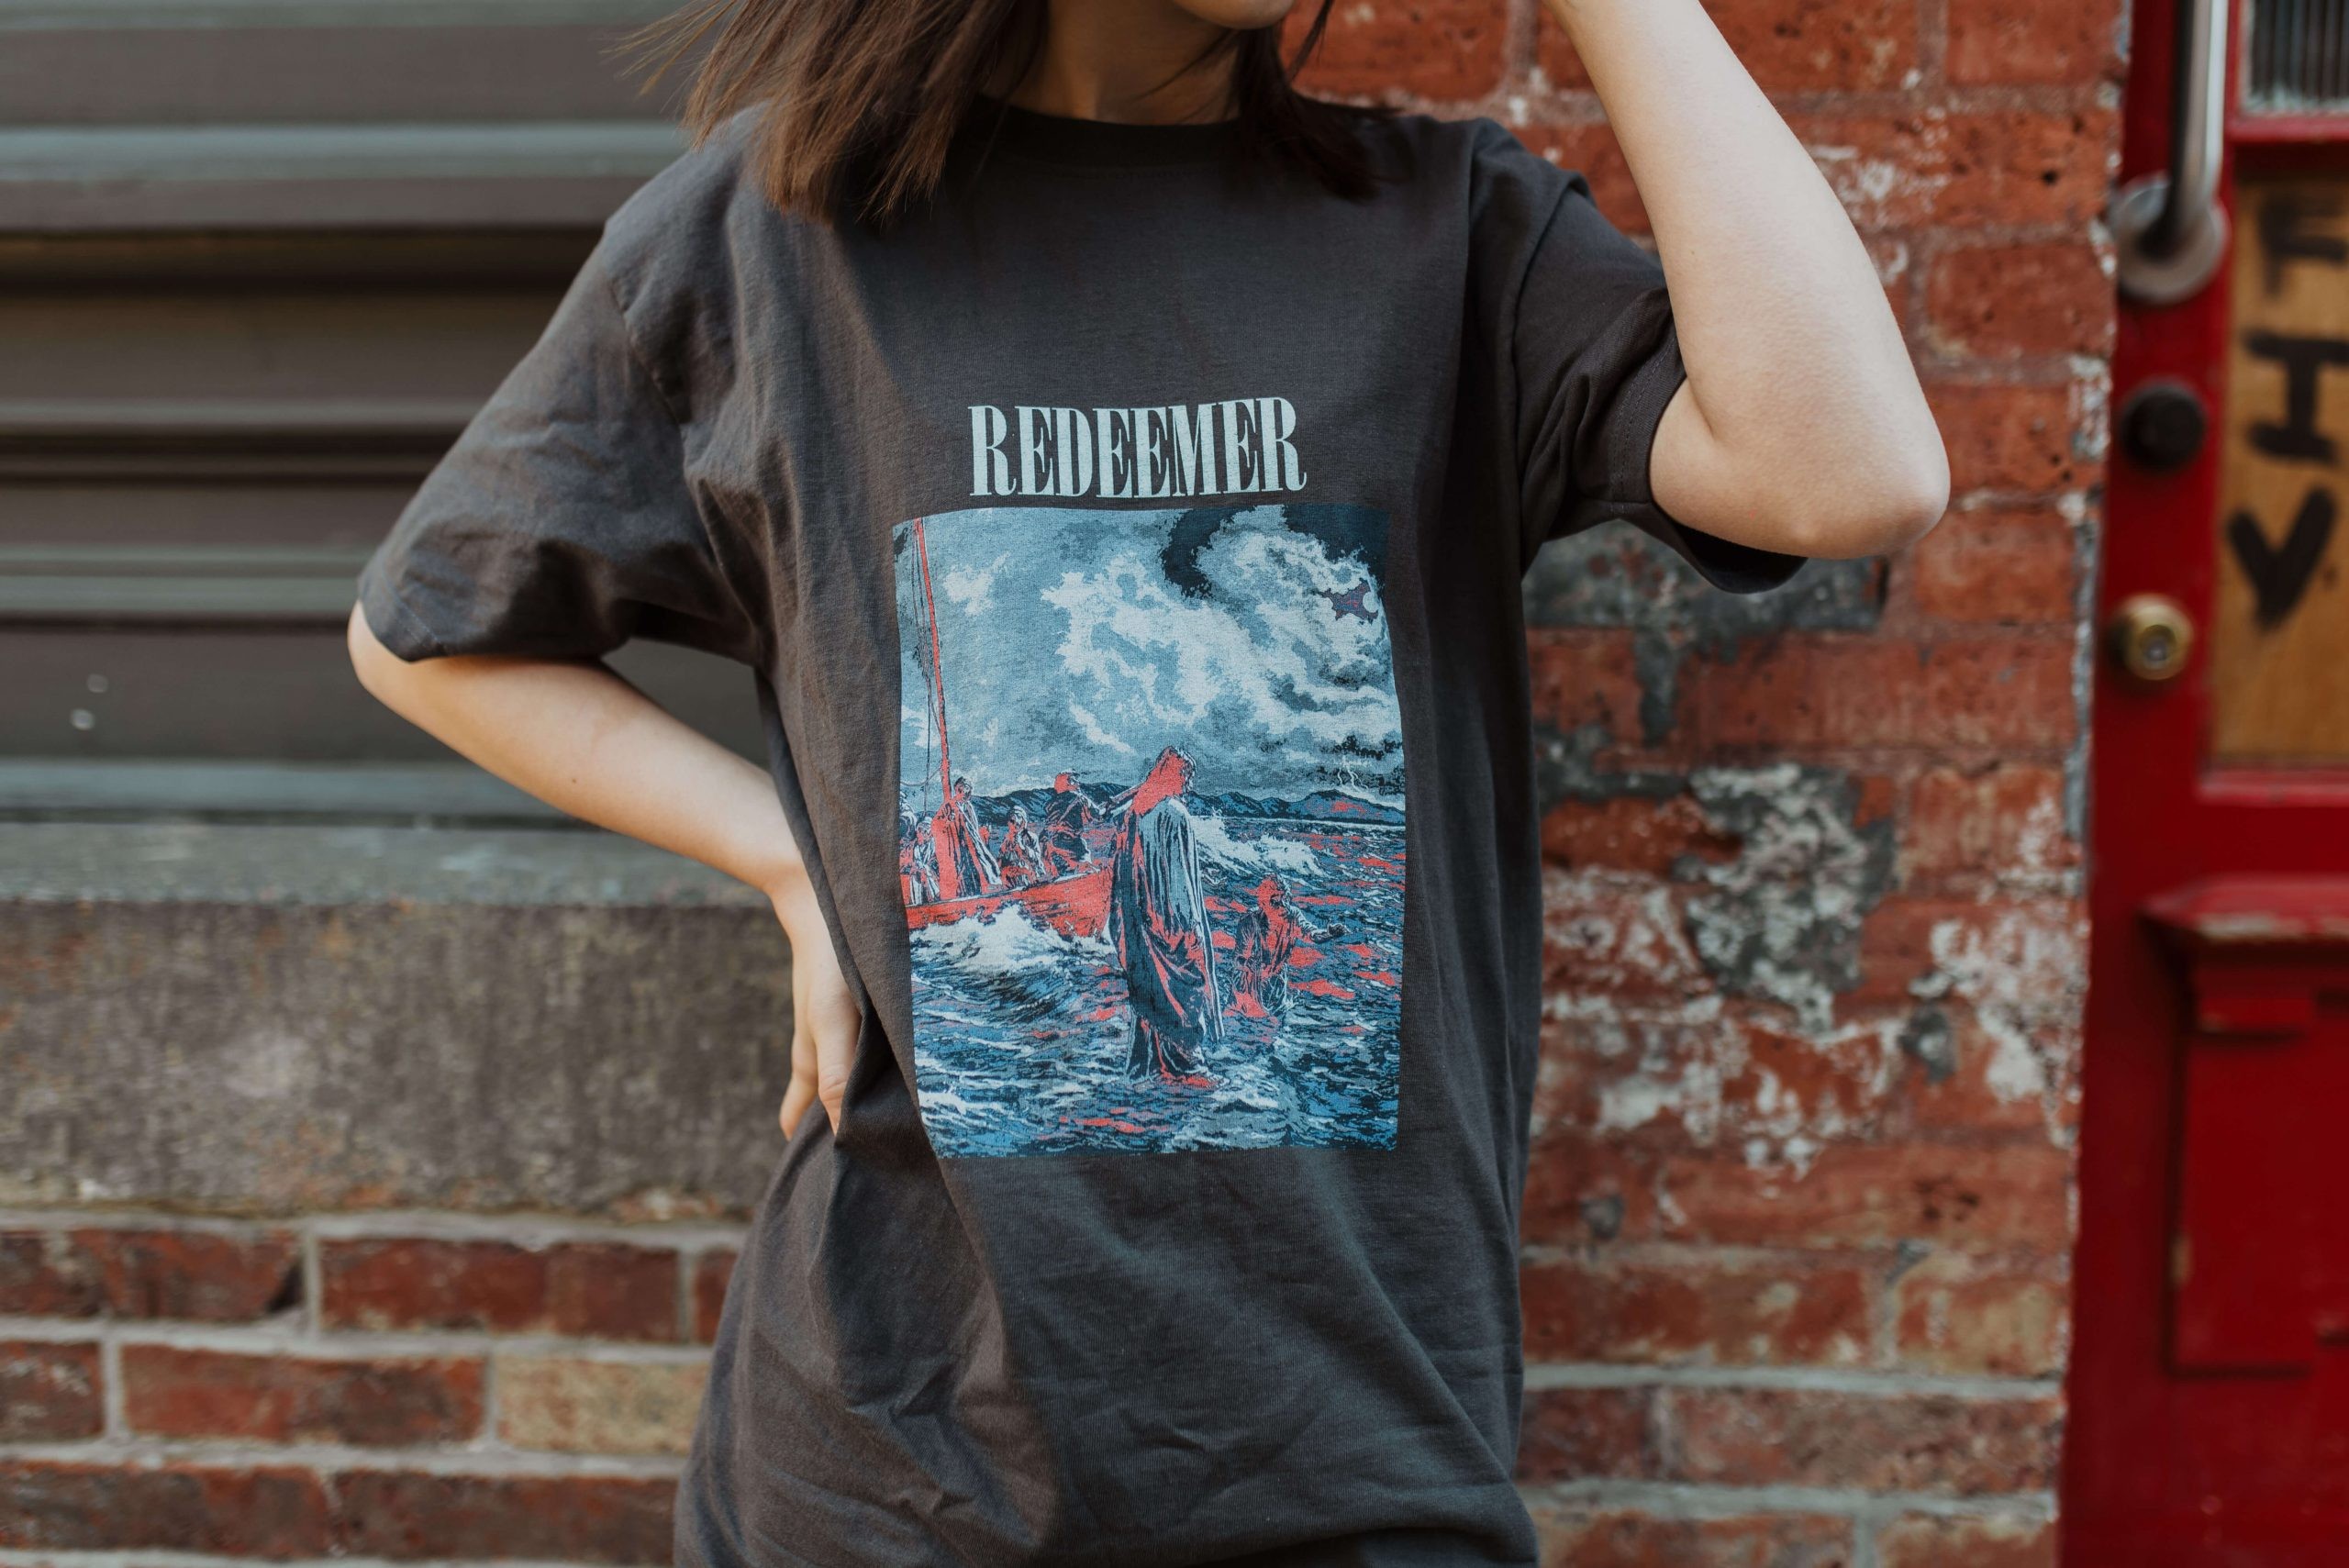 this is a photo of a t-shirt with redeemer on it